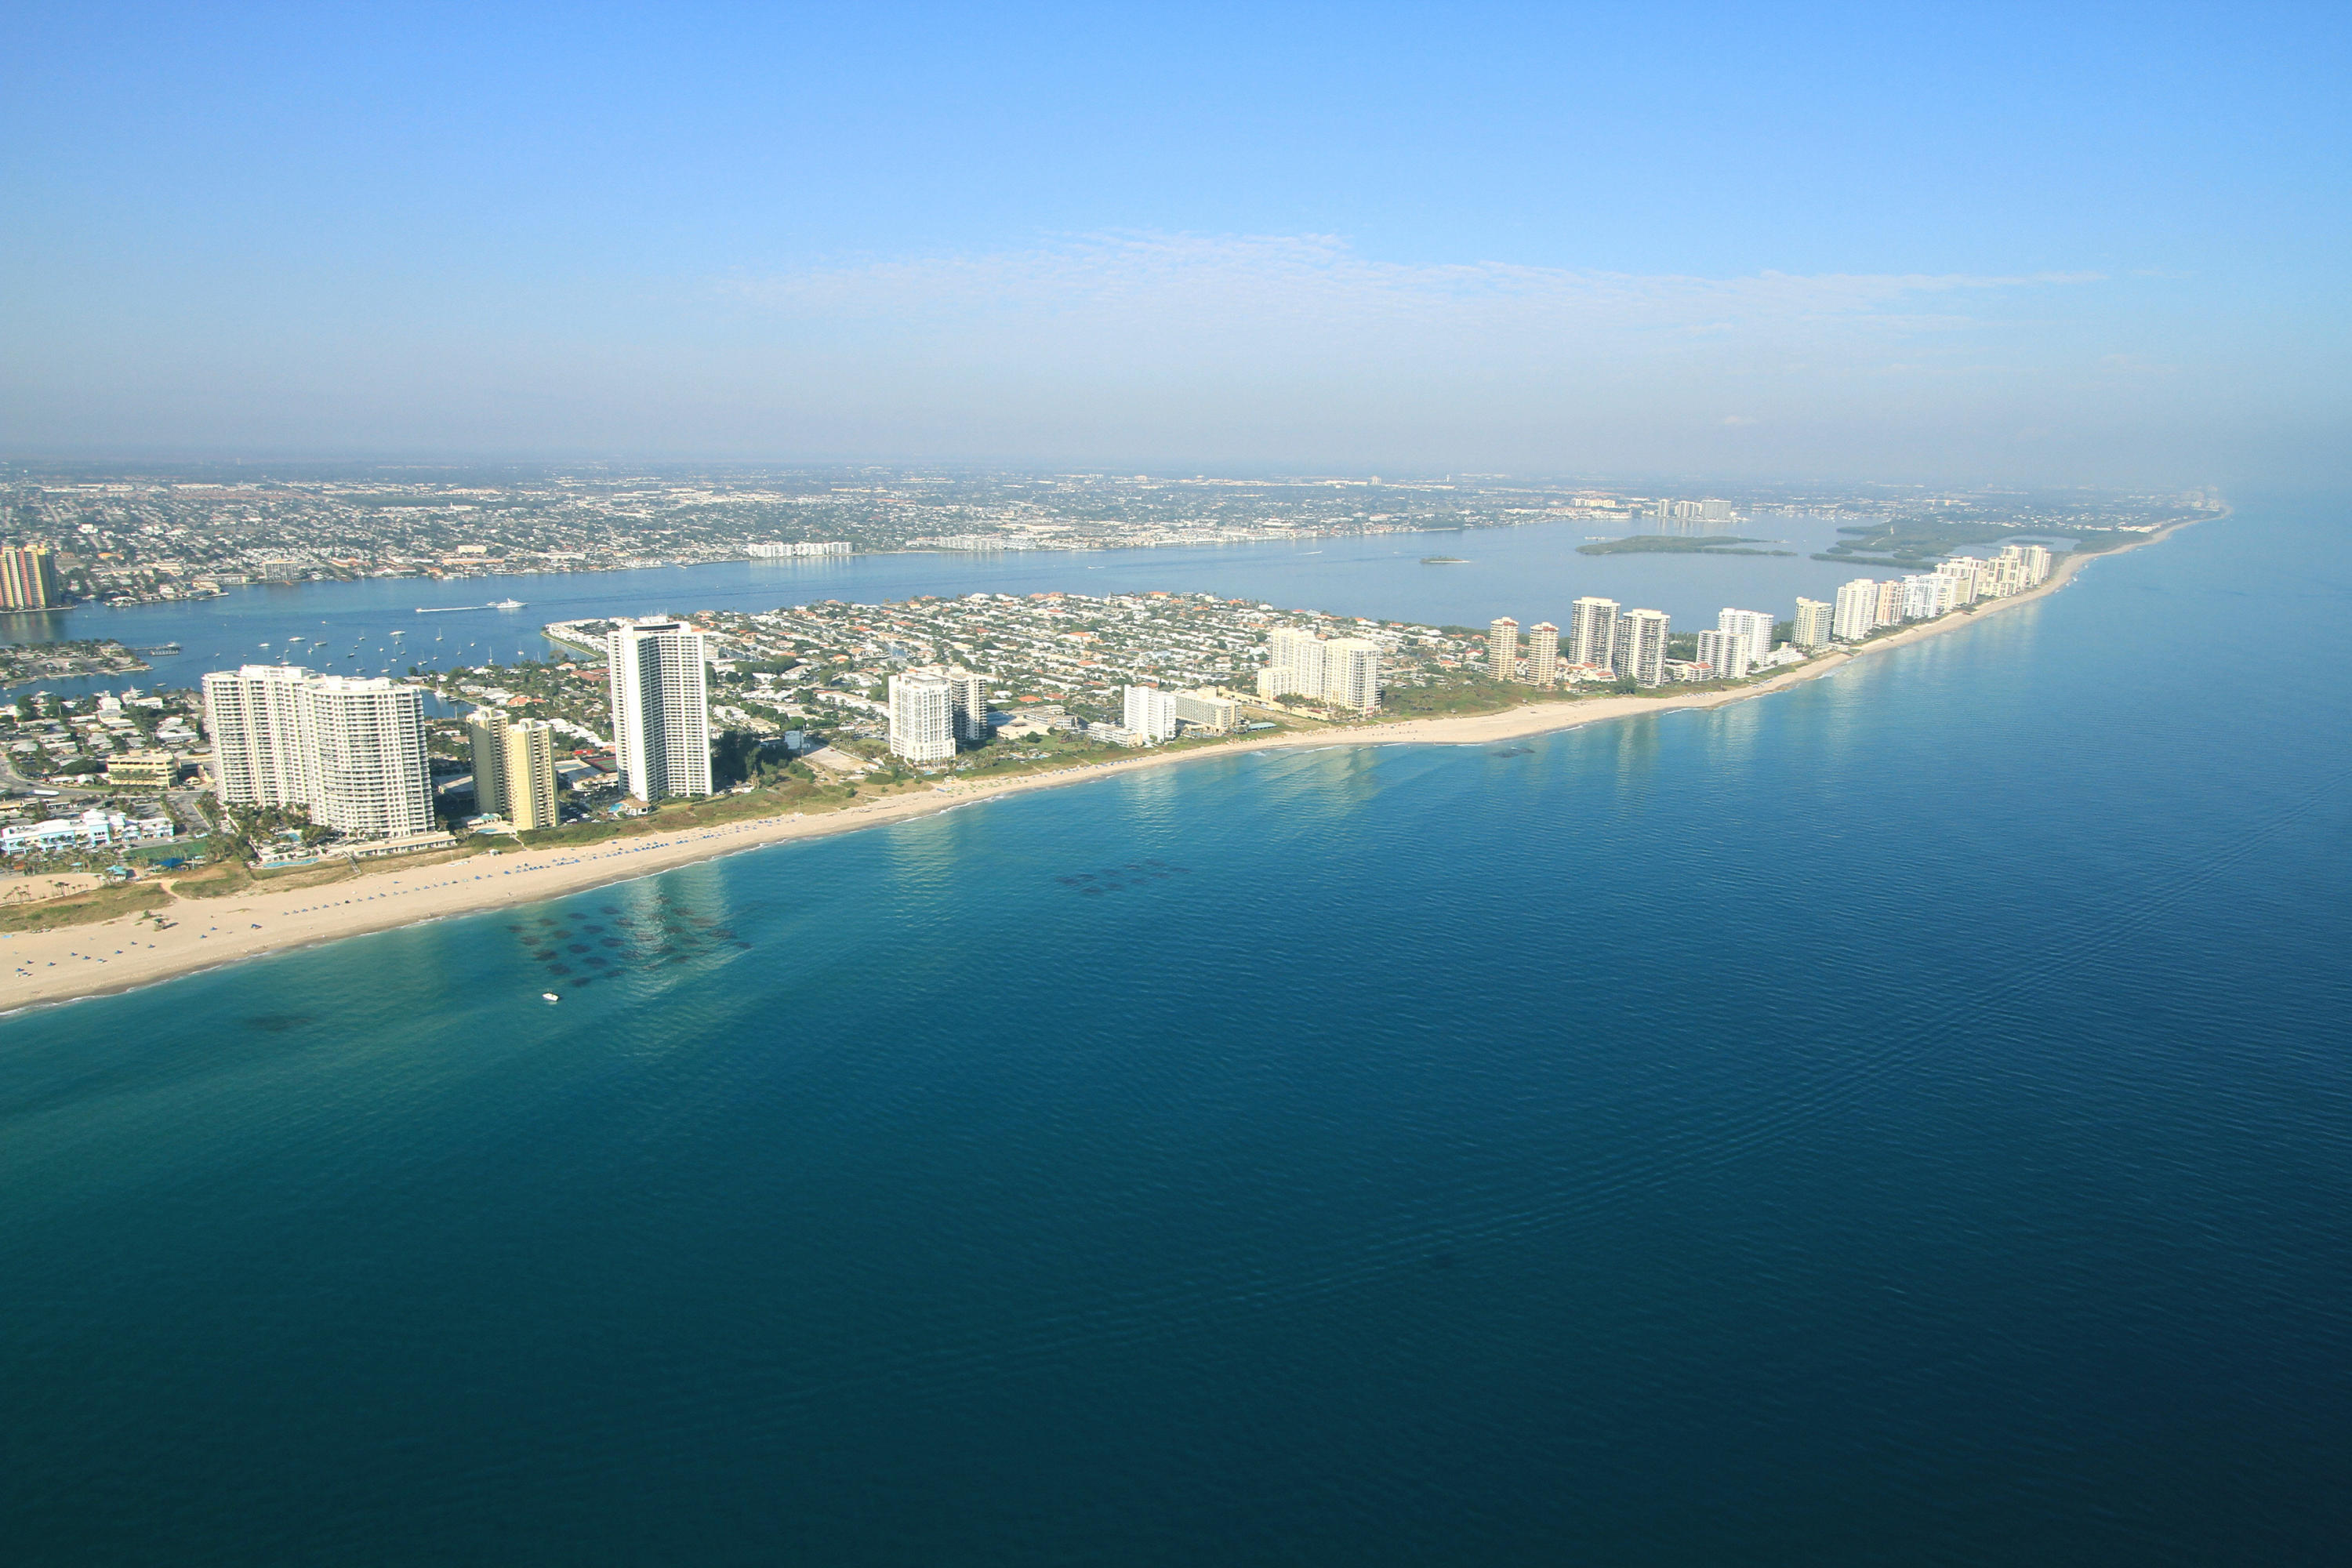 RESORT AT SINGER ISLAND RESIDENTIAL CONDO UNIT 1651